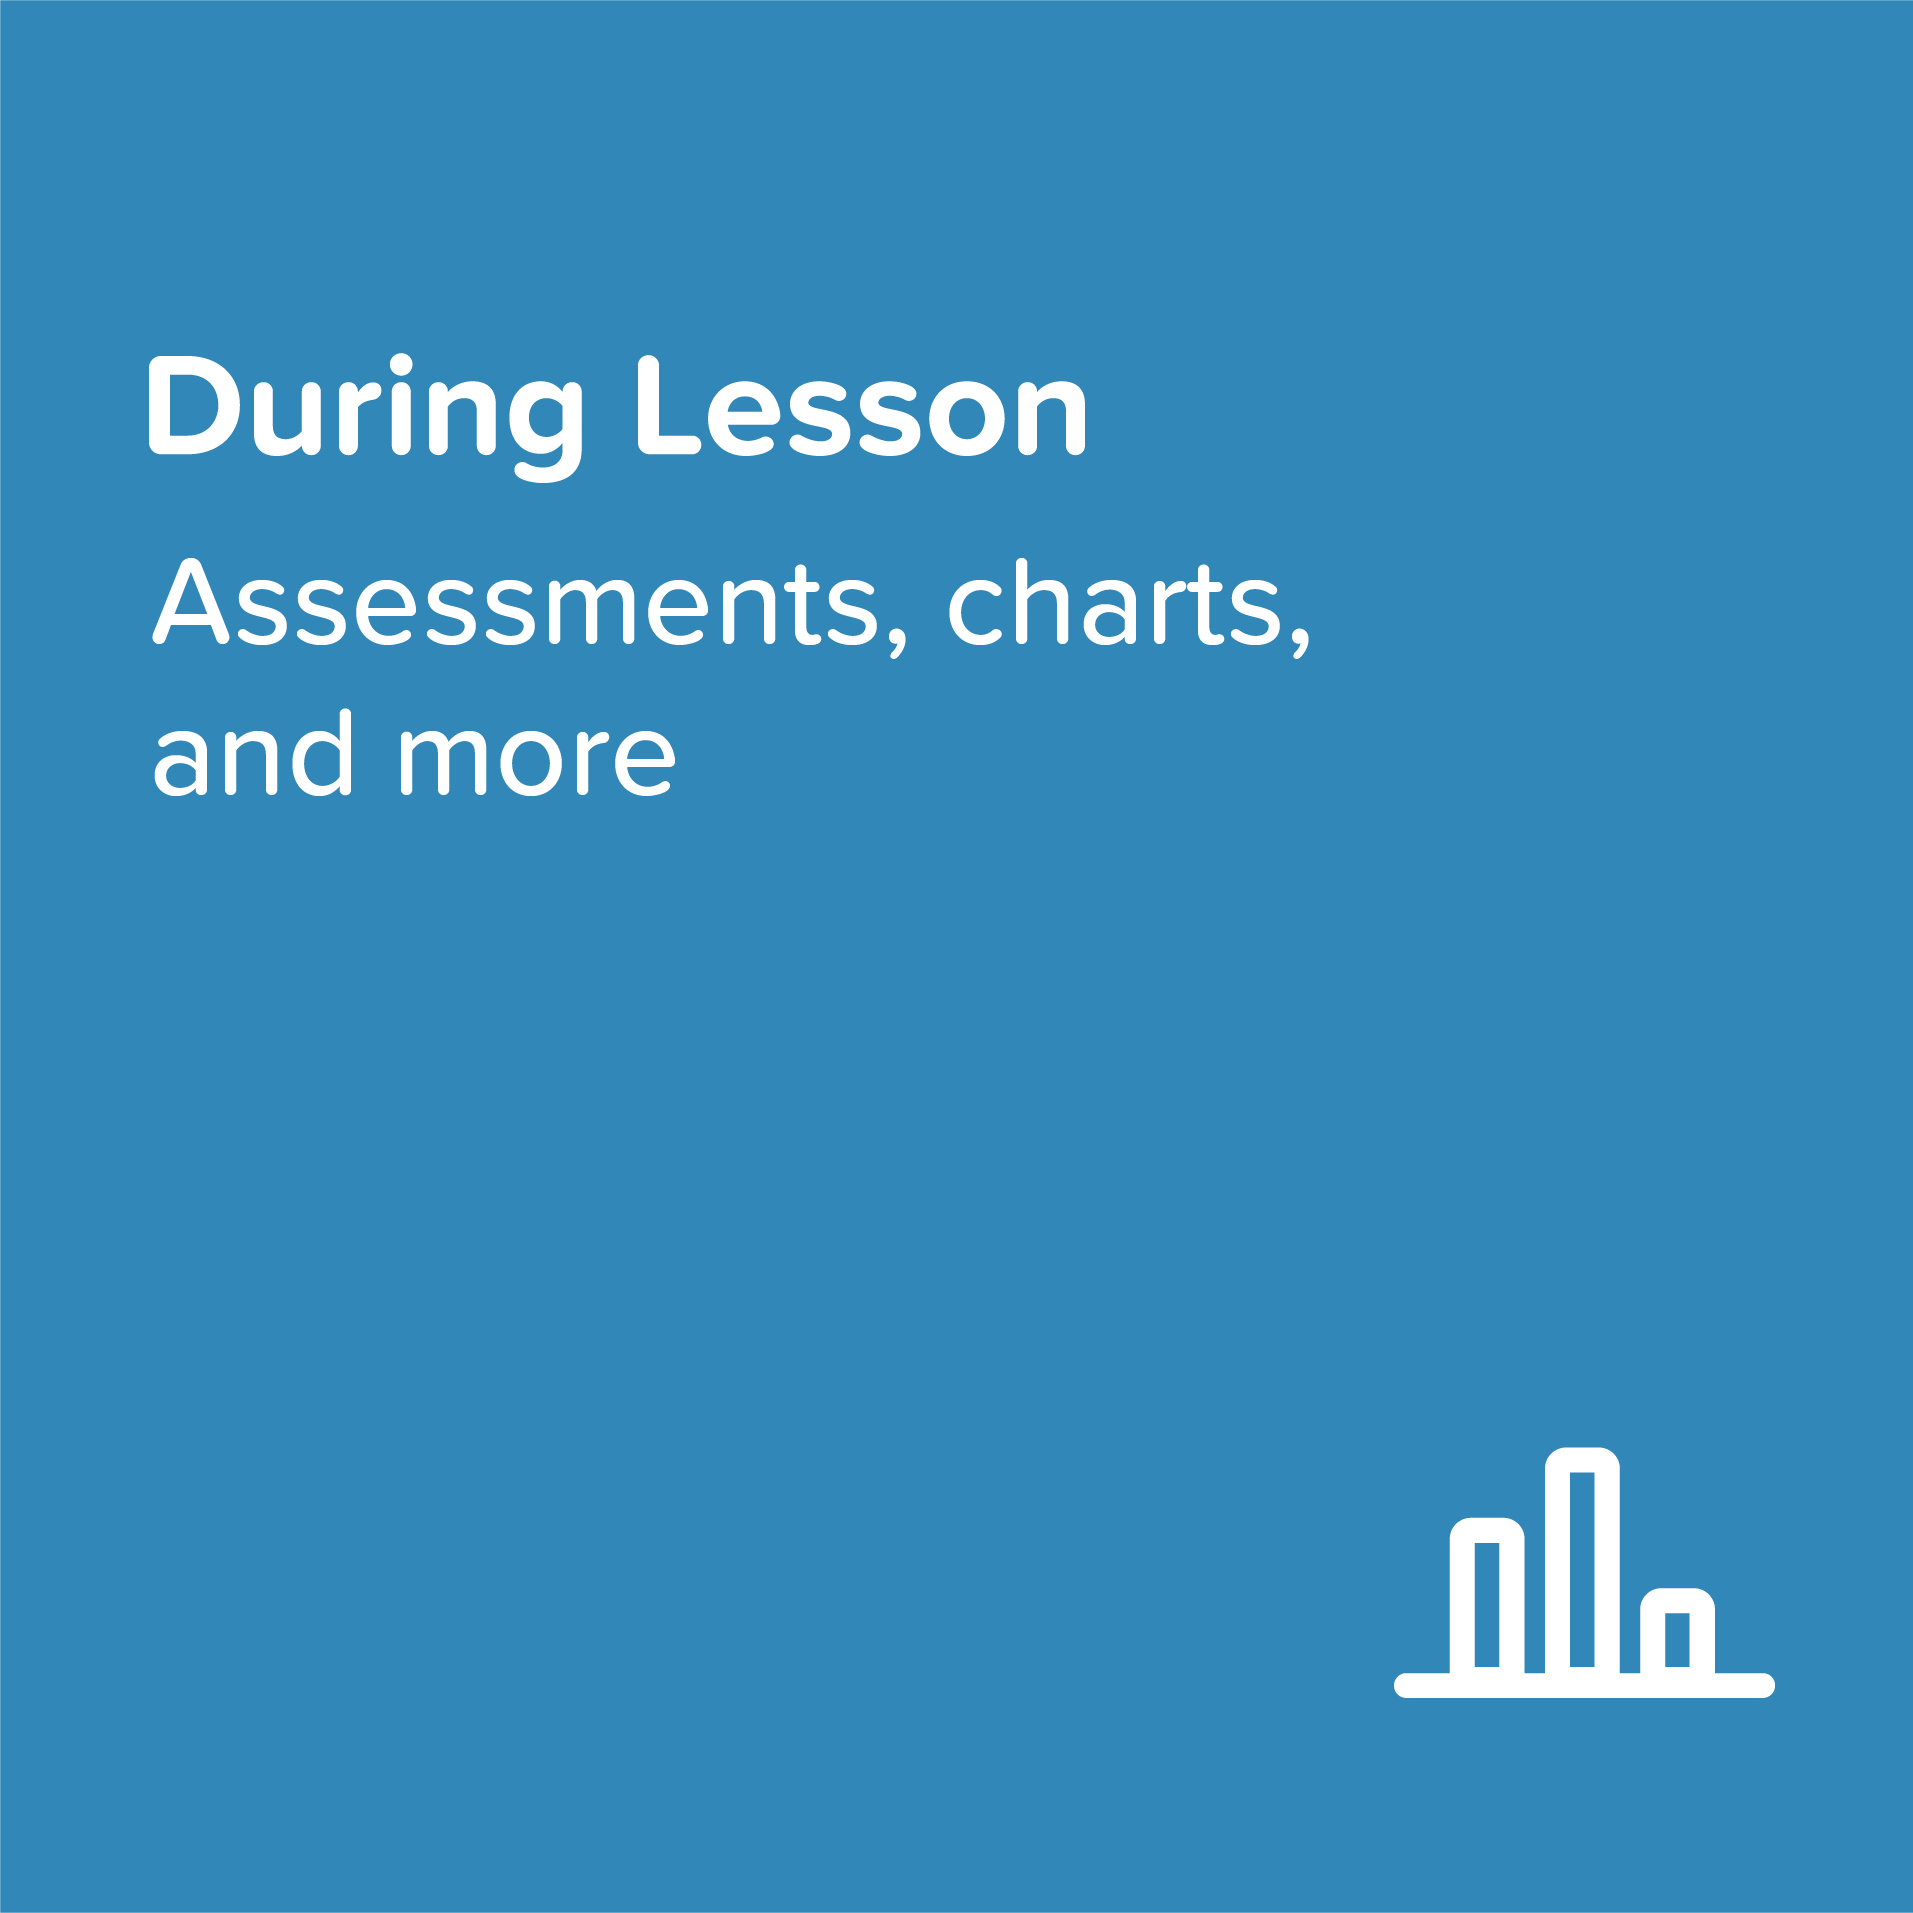 During Lesson   With grids, charts and checks for understanding, these templates let you quickly create interactive activities.    View & Download >